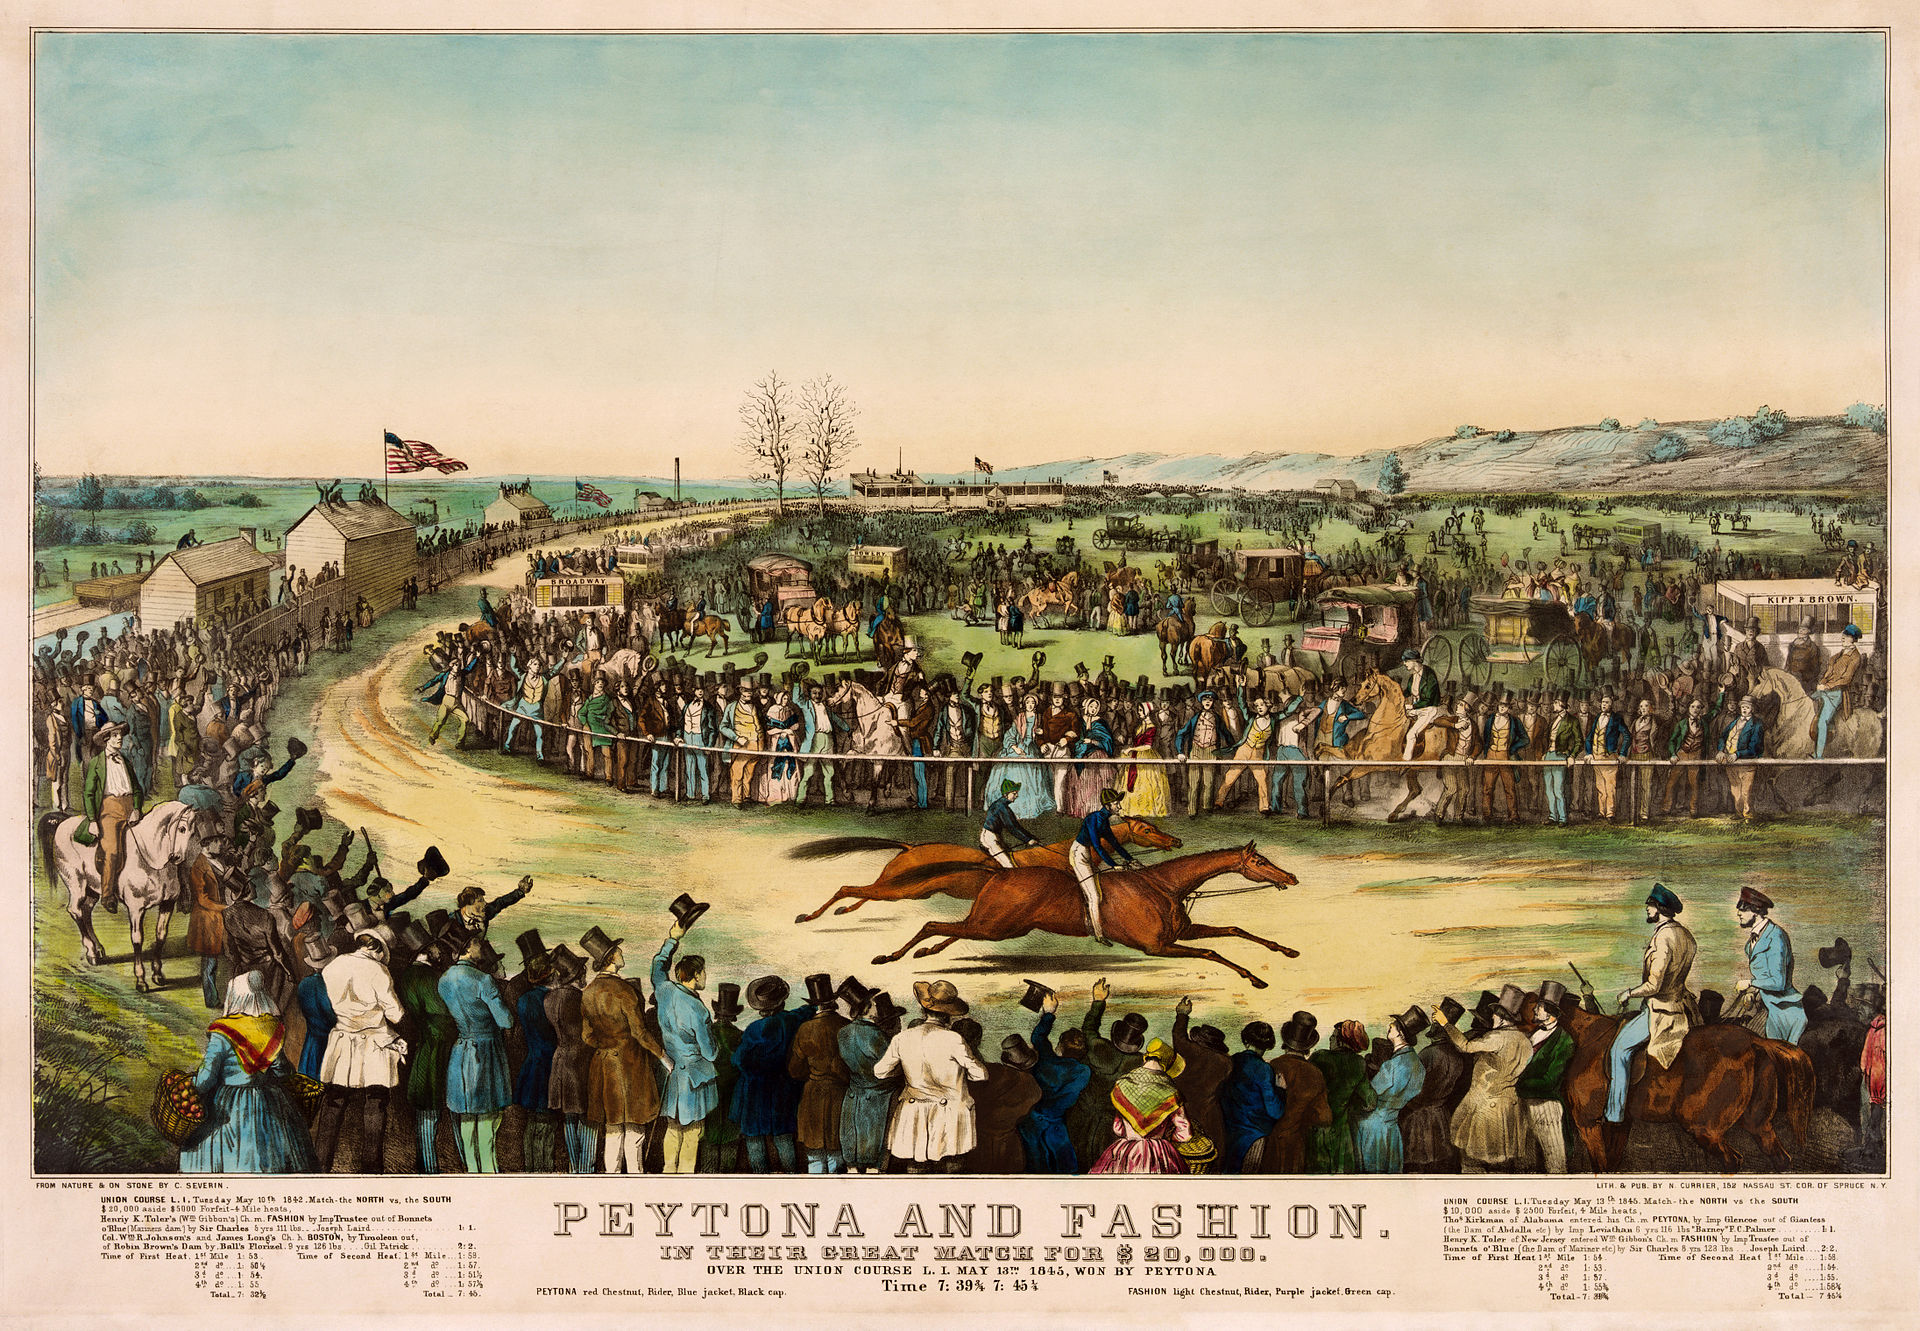 Fashion meets Peytona, 1845